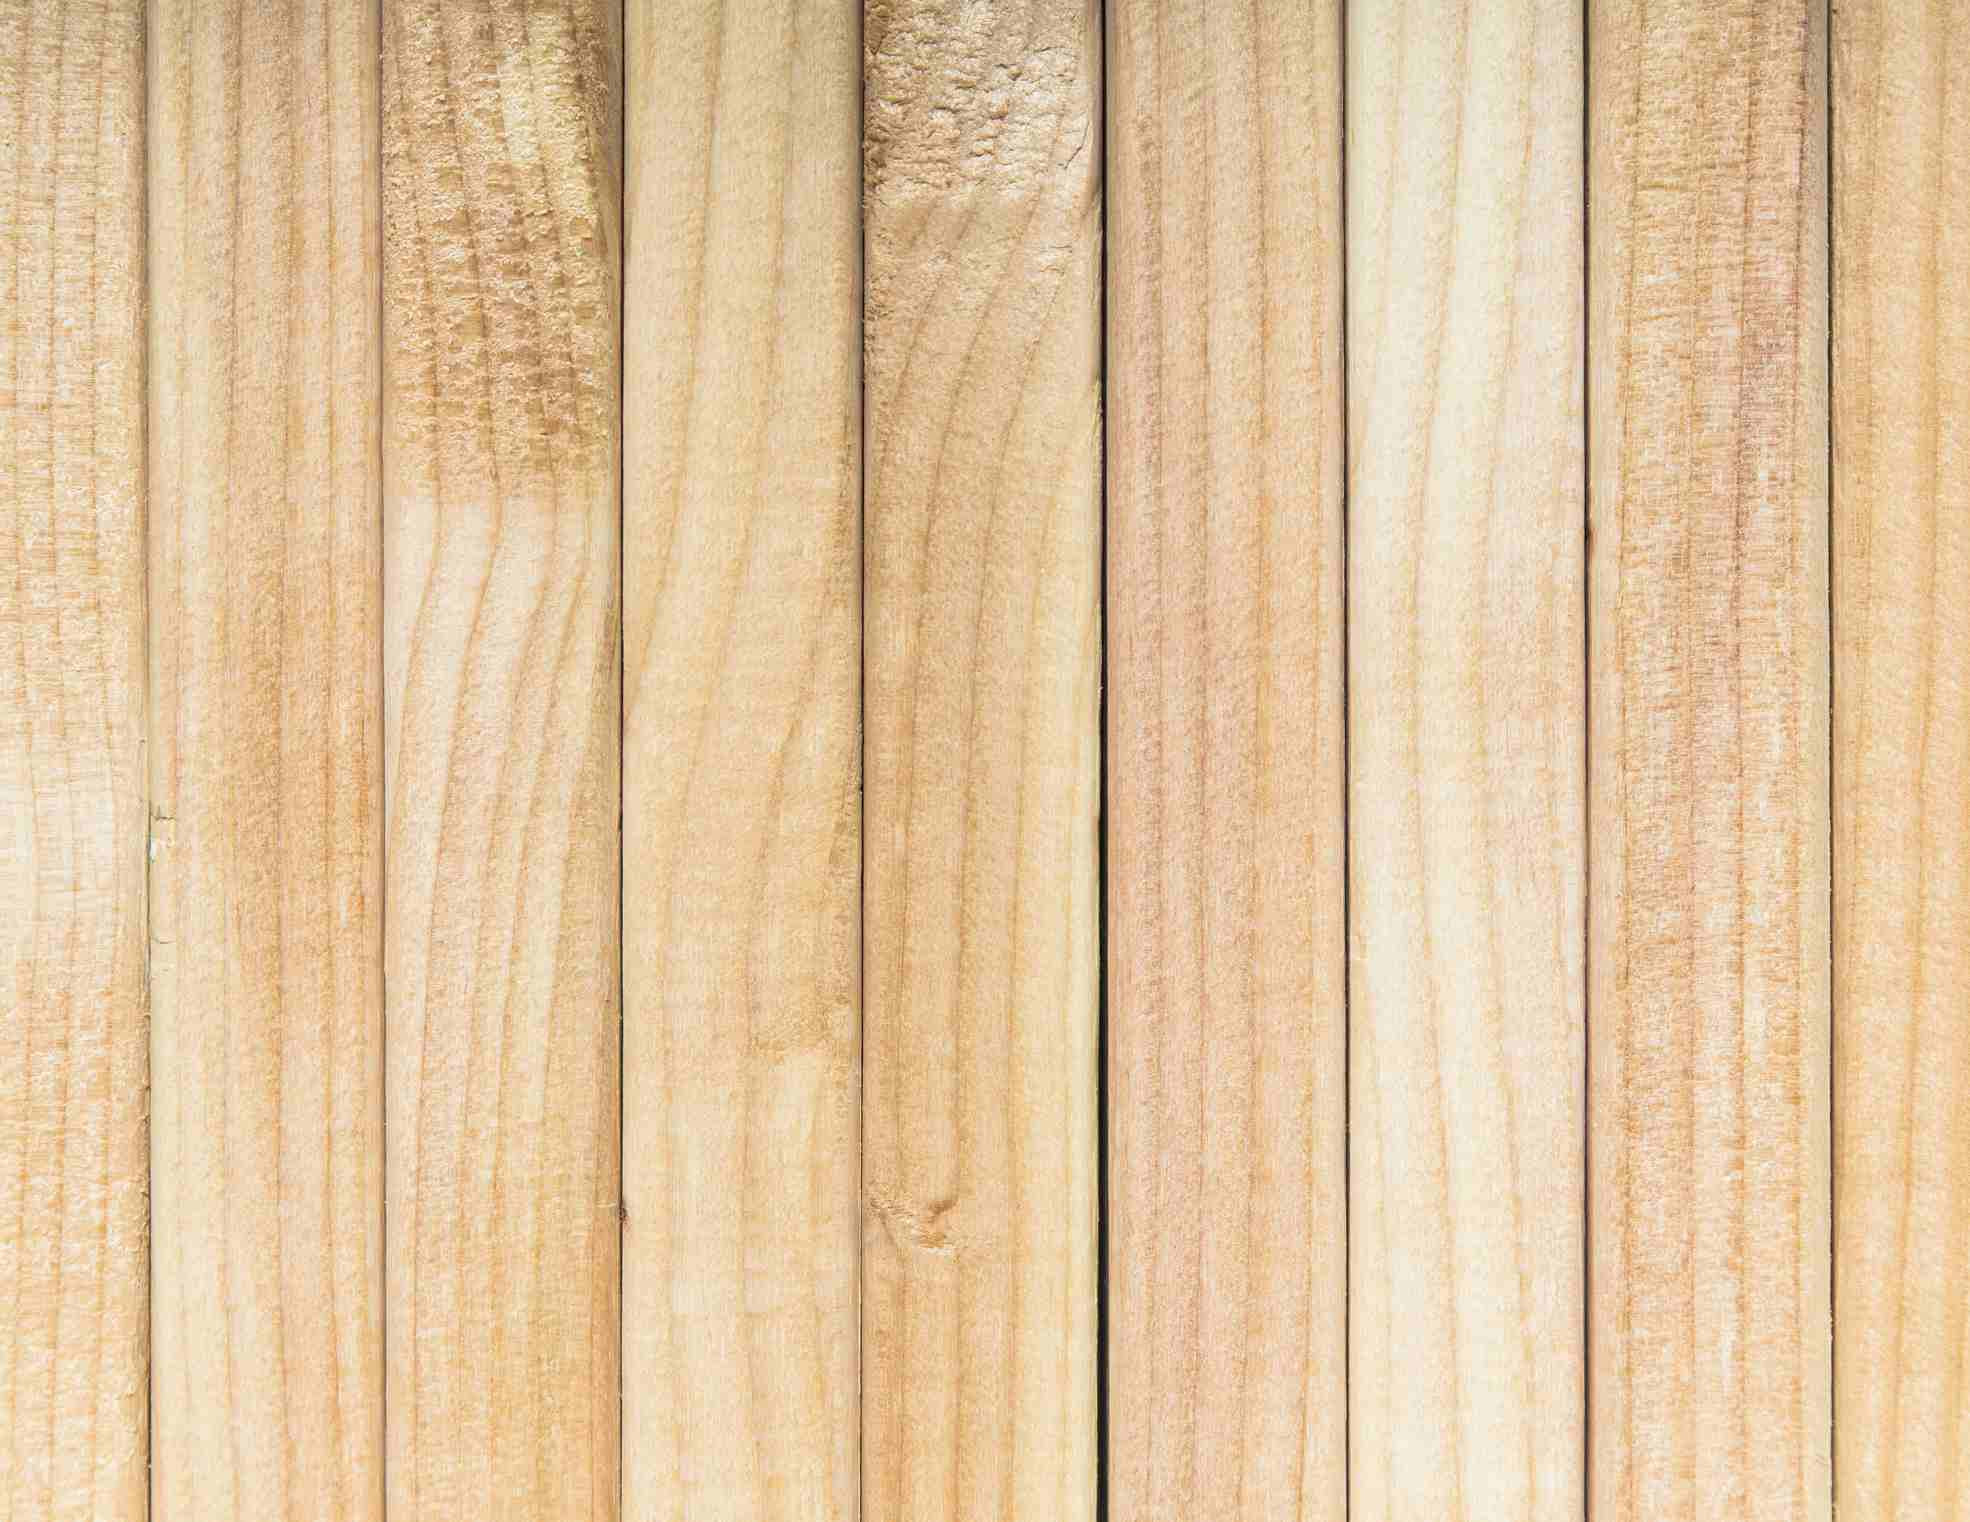 hardwood floor installation price estimate of standing timber prices for loggers throughout gettyimages 159395853 57824f815f9b5831b575e3ea